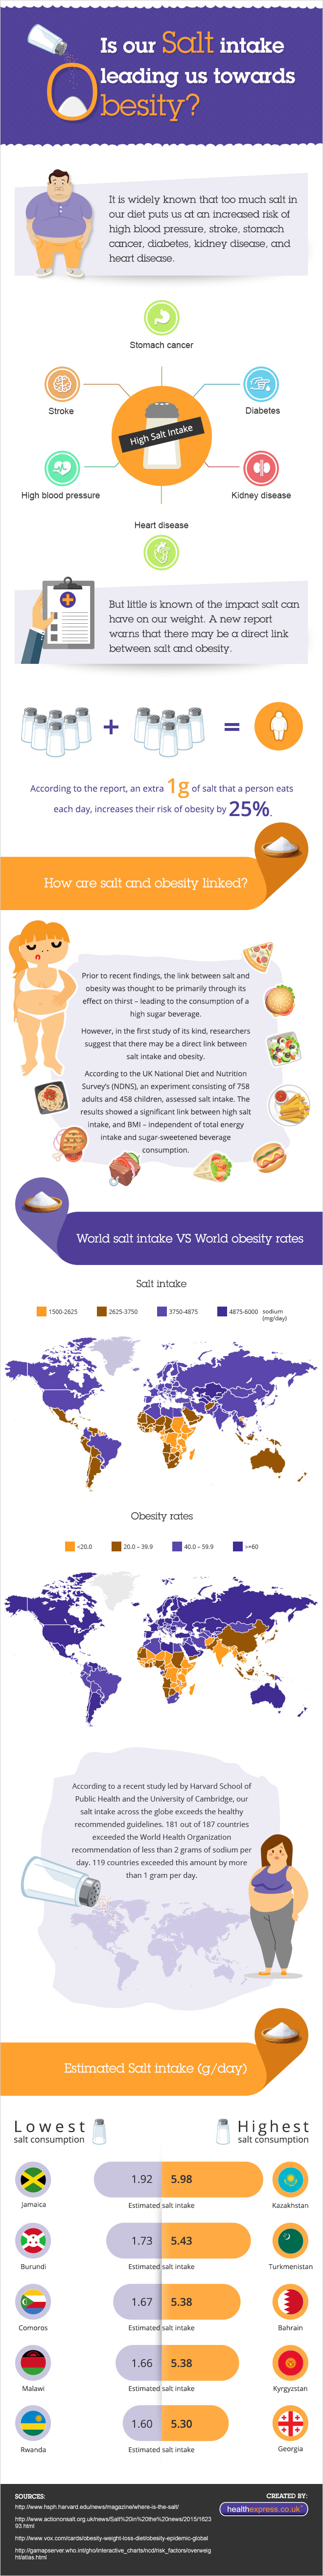 does salt intake causes an obesity